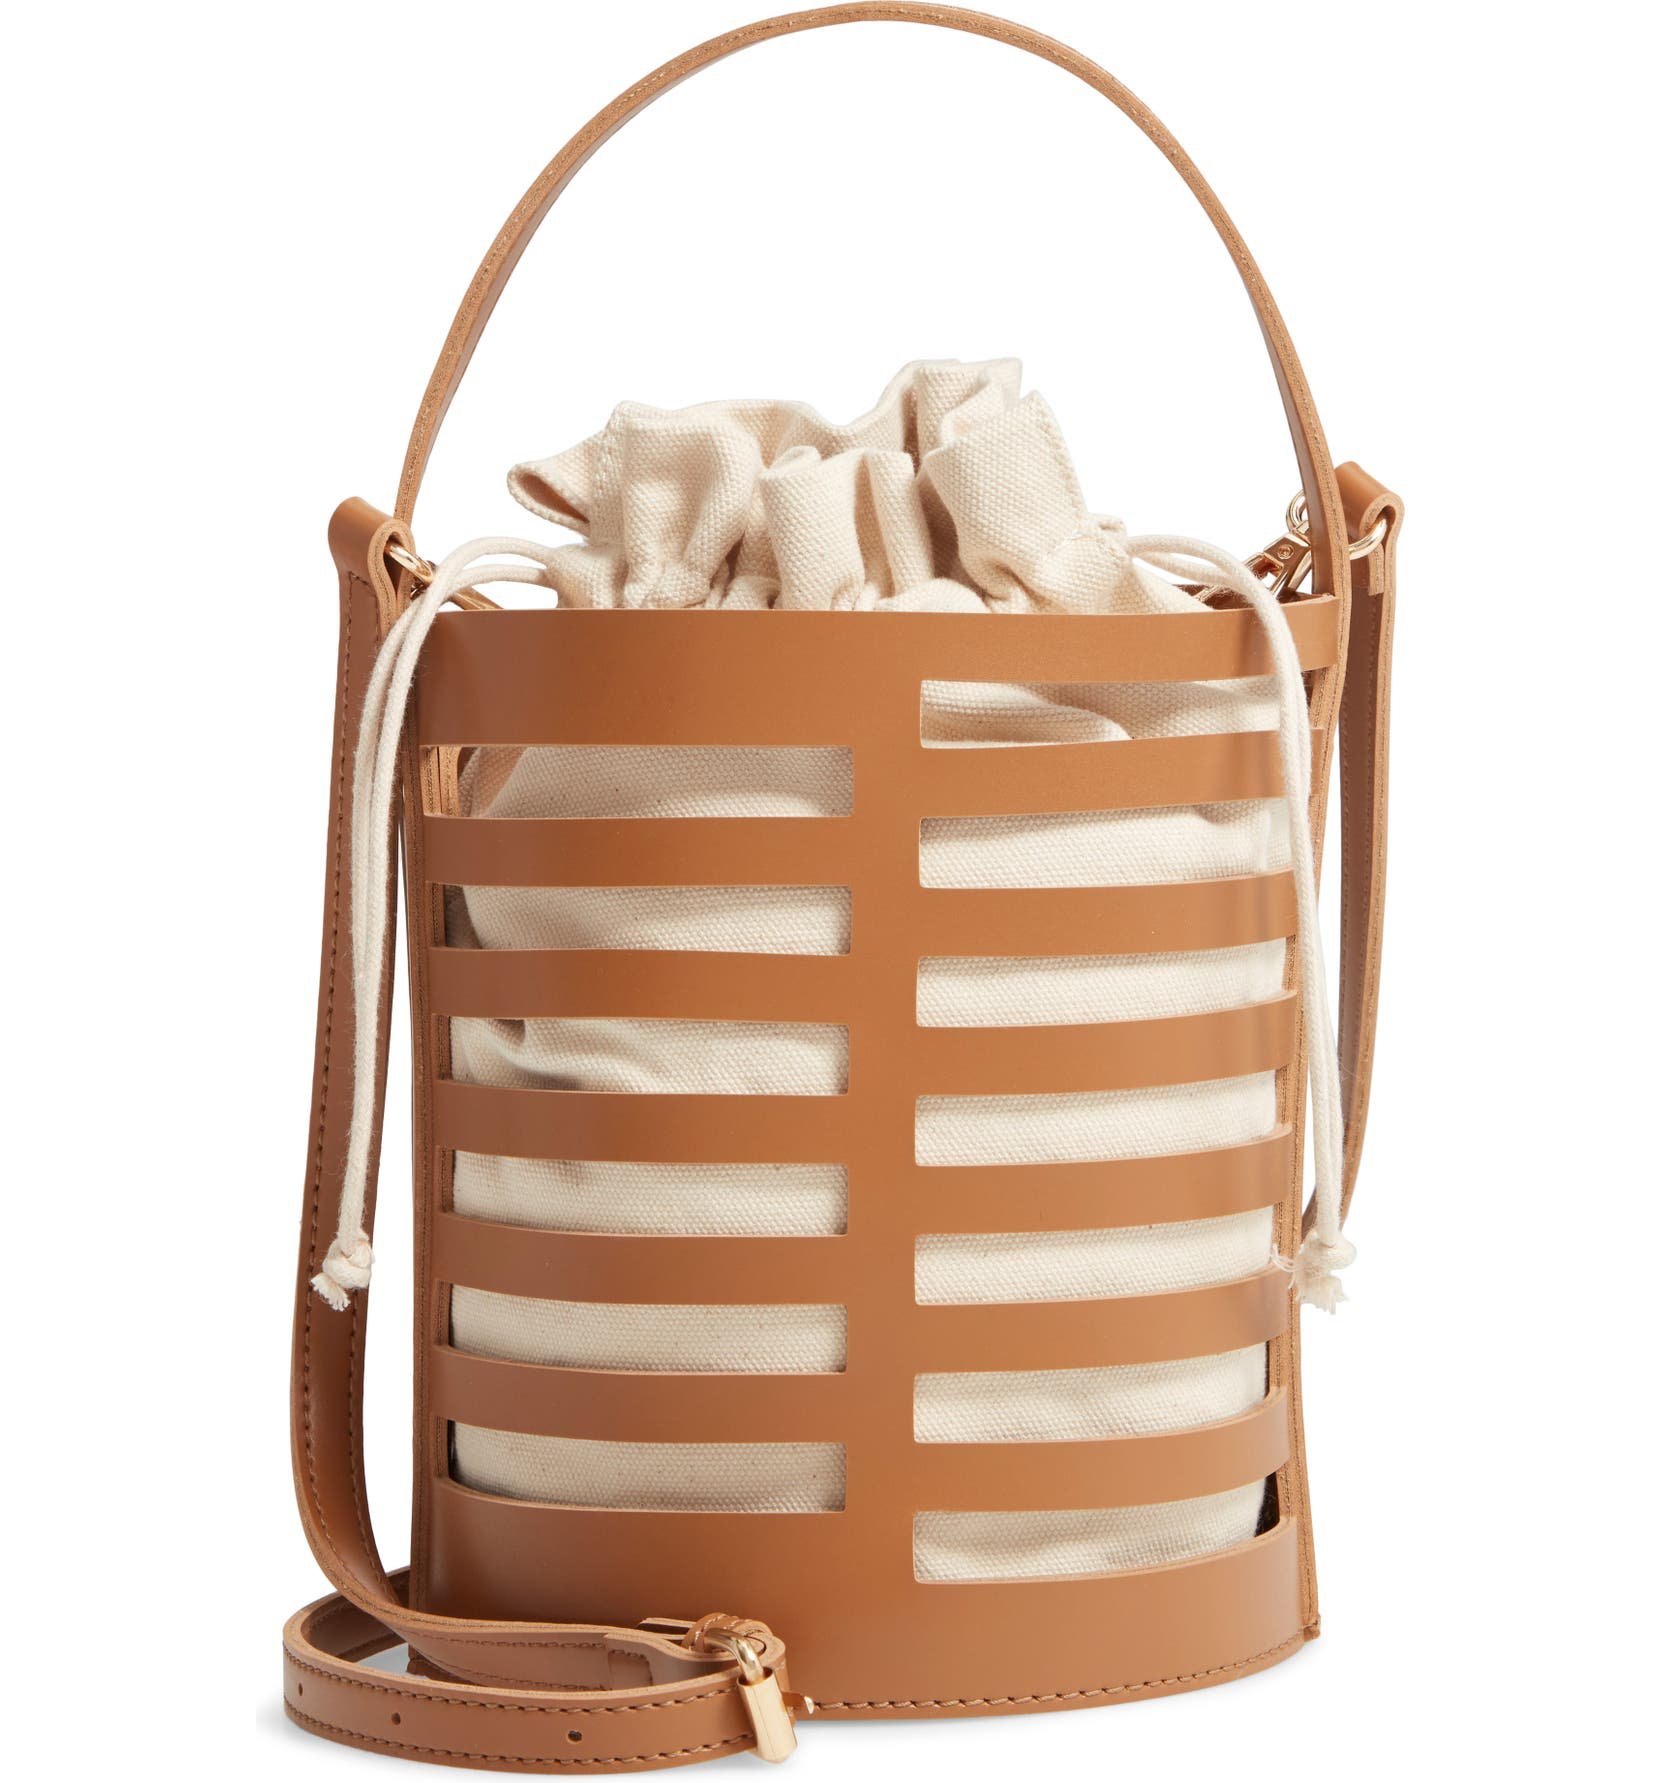 6e7f276e3e Emperia Cutout Round Bucket Crossbody Bag